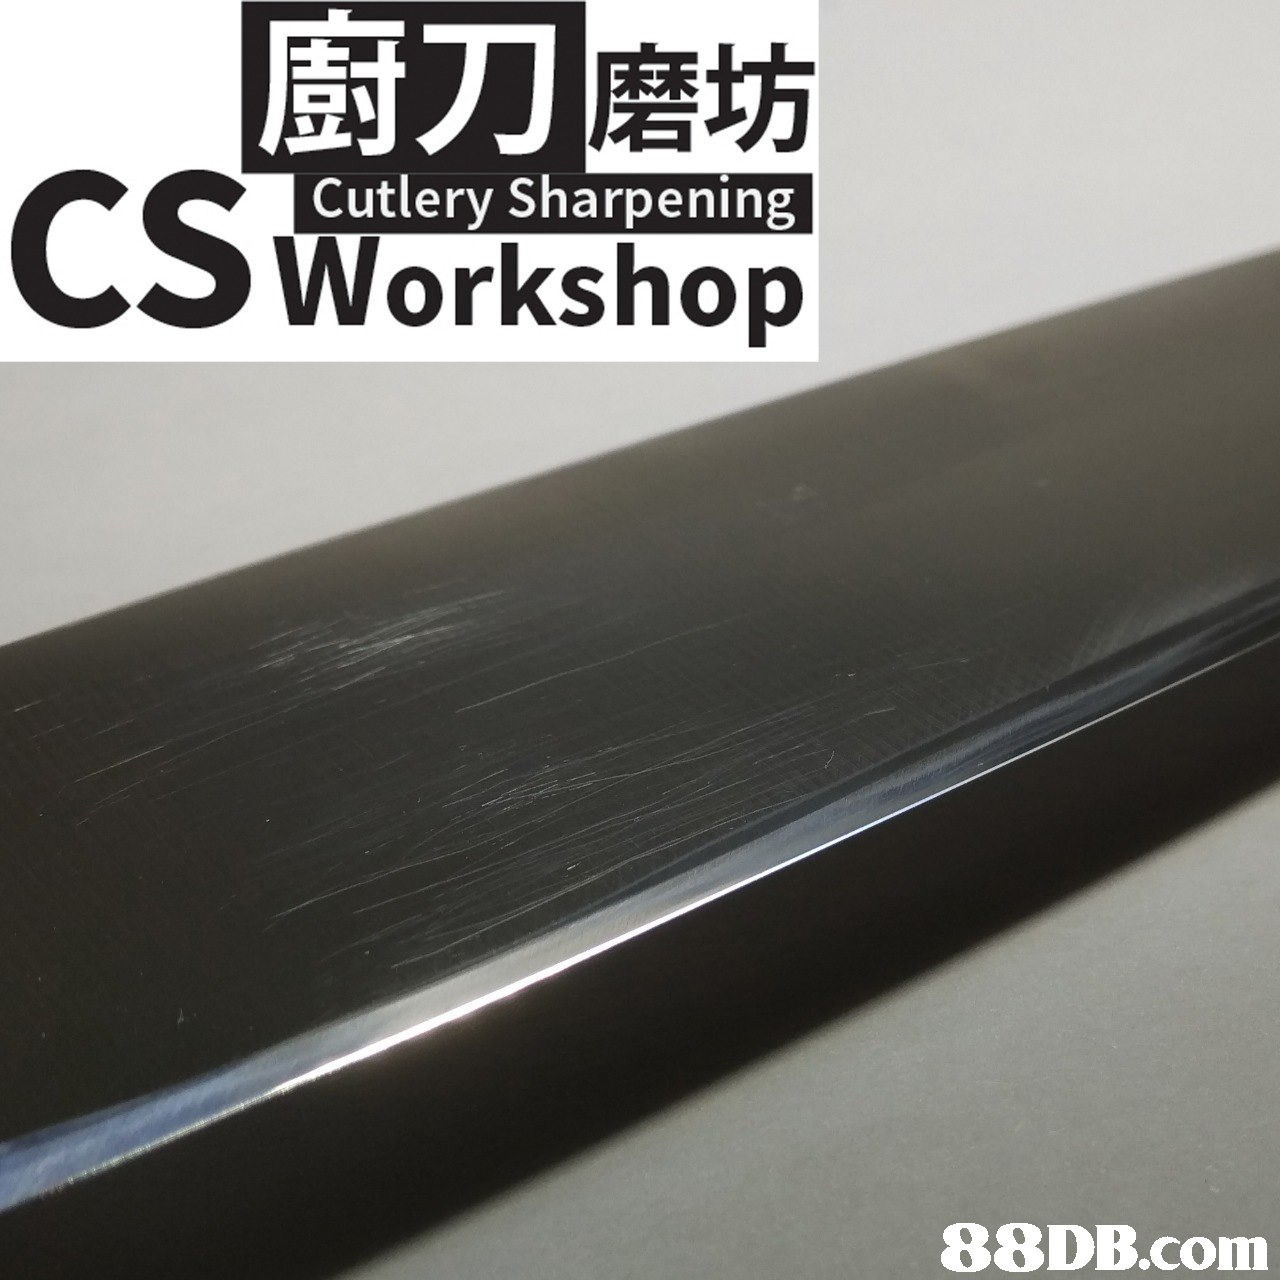 廚刀 CSWorkshop 磨坊 Cutlery Sharpening   automotive exterior,bumper,hardware,